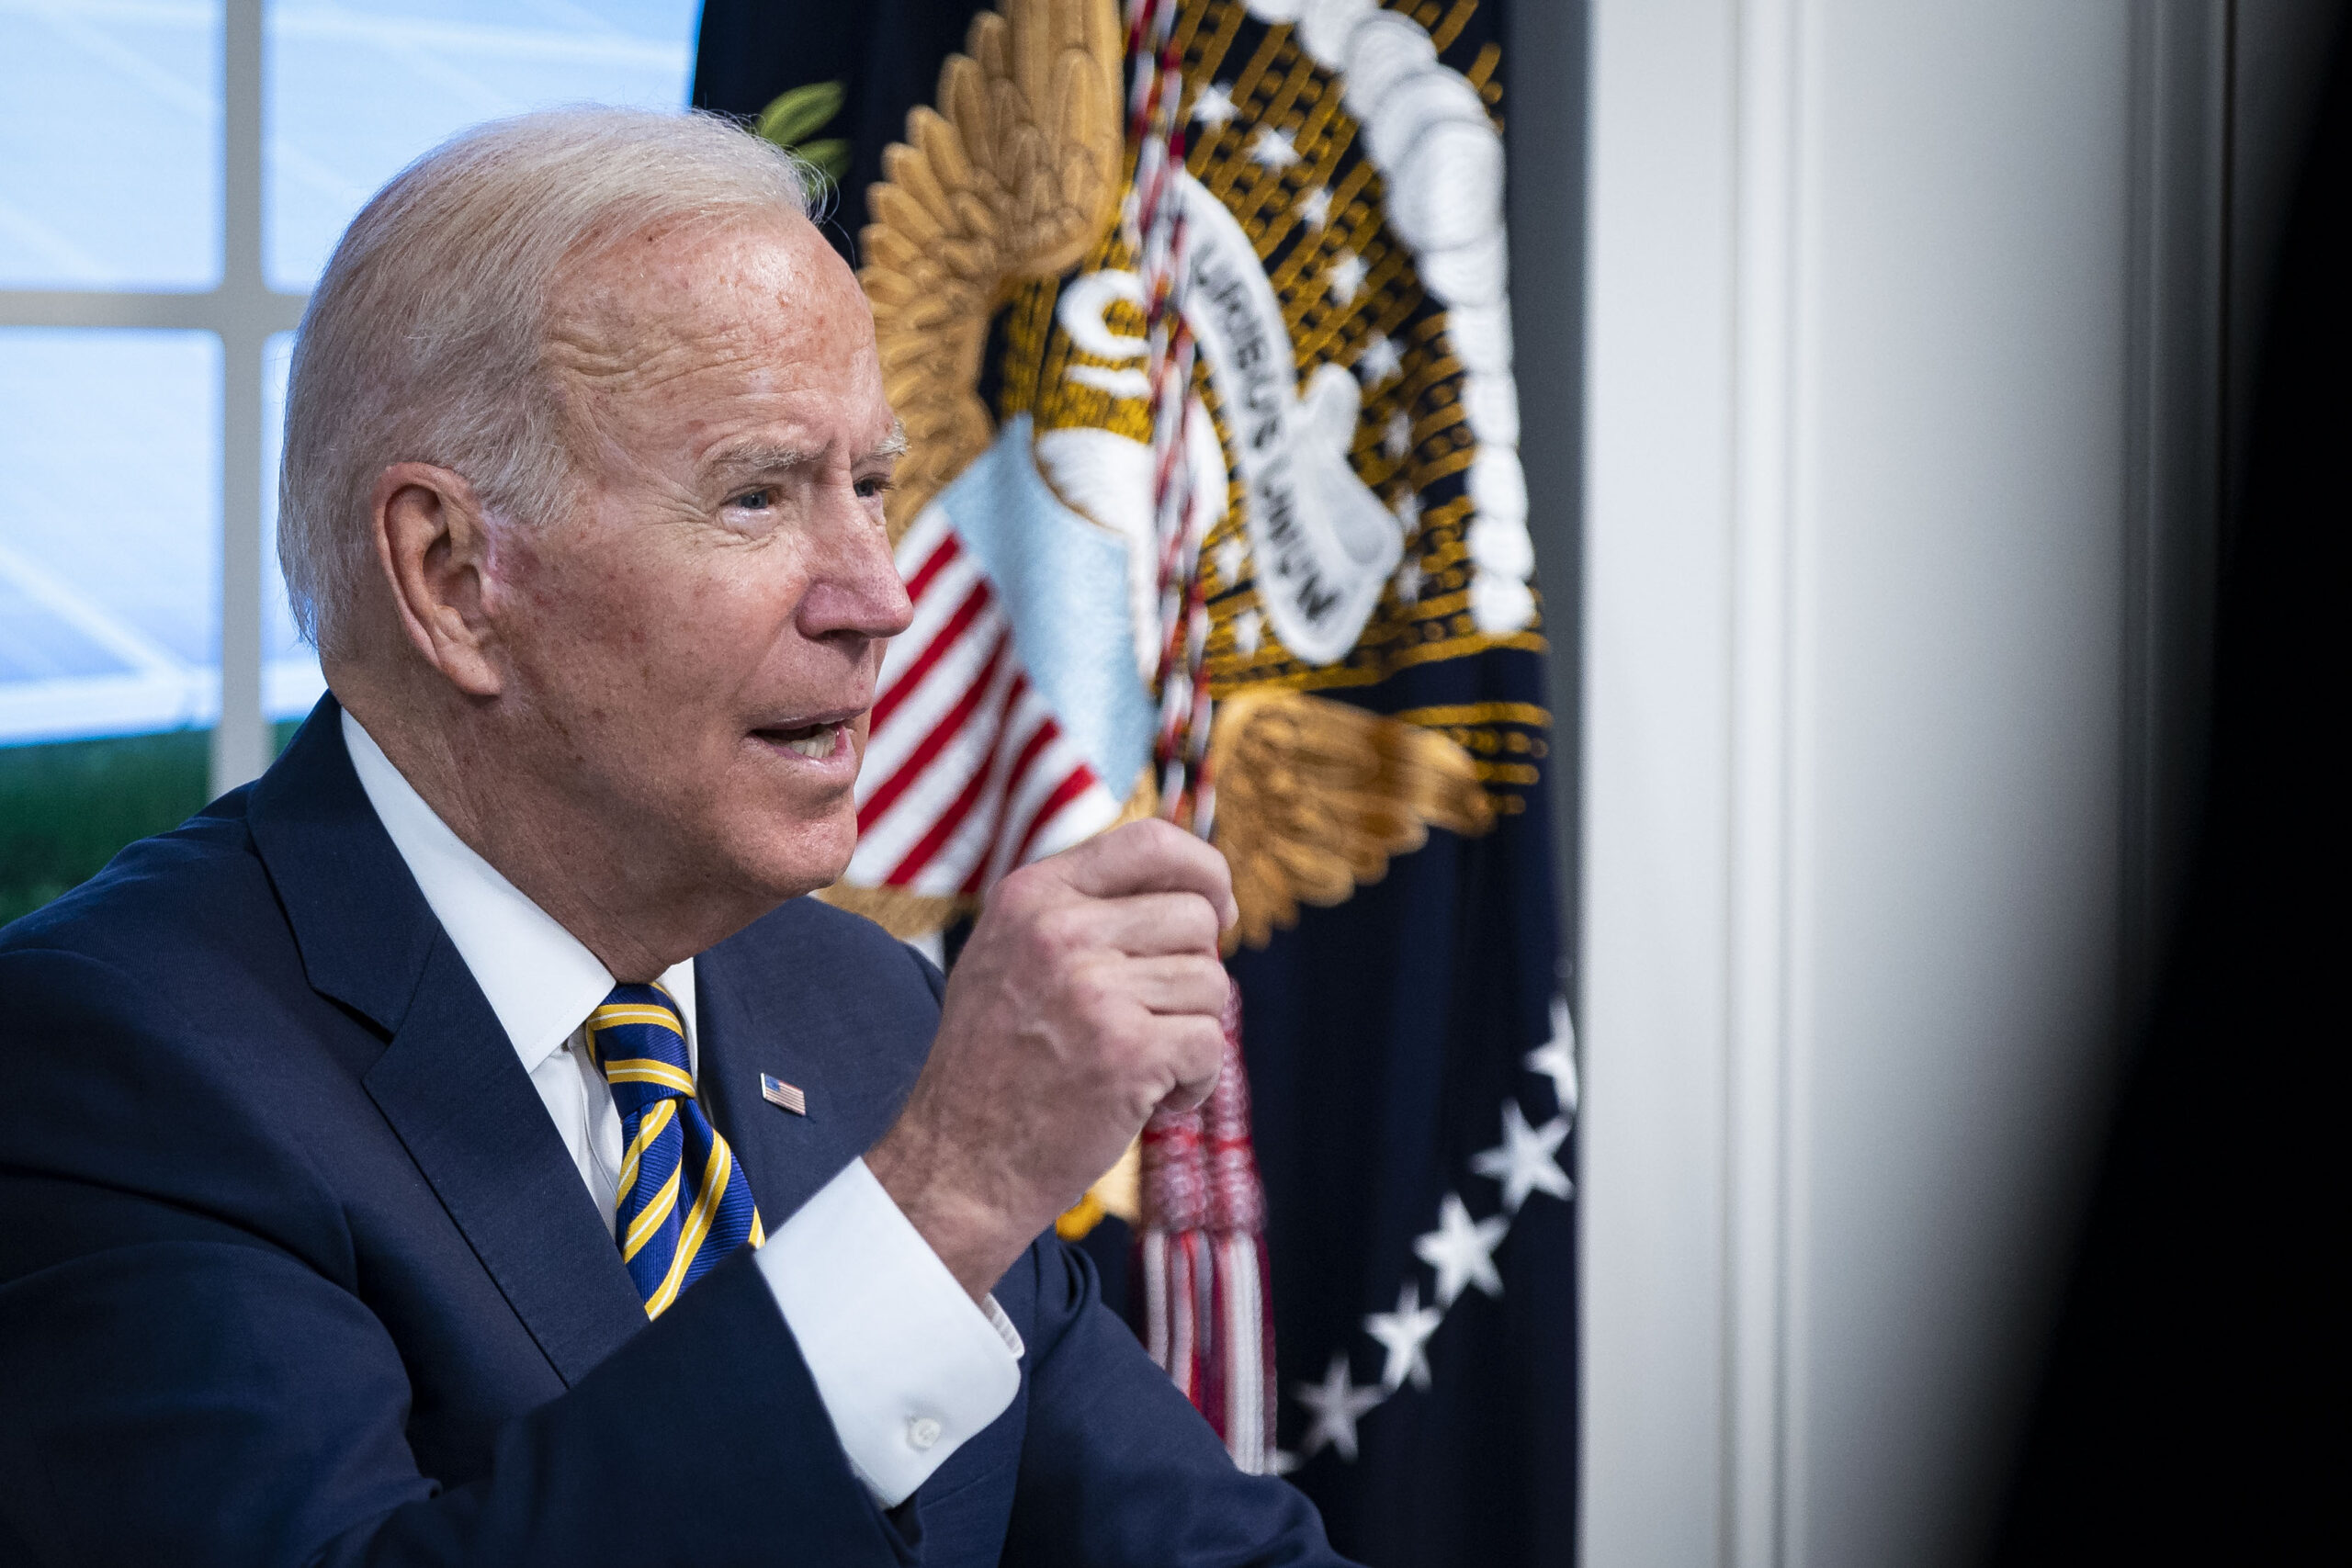 President Joe Biden speaks during a conference call on climate change with the Major Economies Forum on Energy and Climate on Sept. 17, 2021 in Washington, D.C. Credit: Al Drago/Getty Images